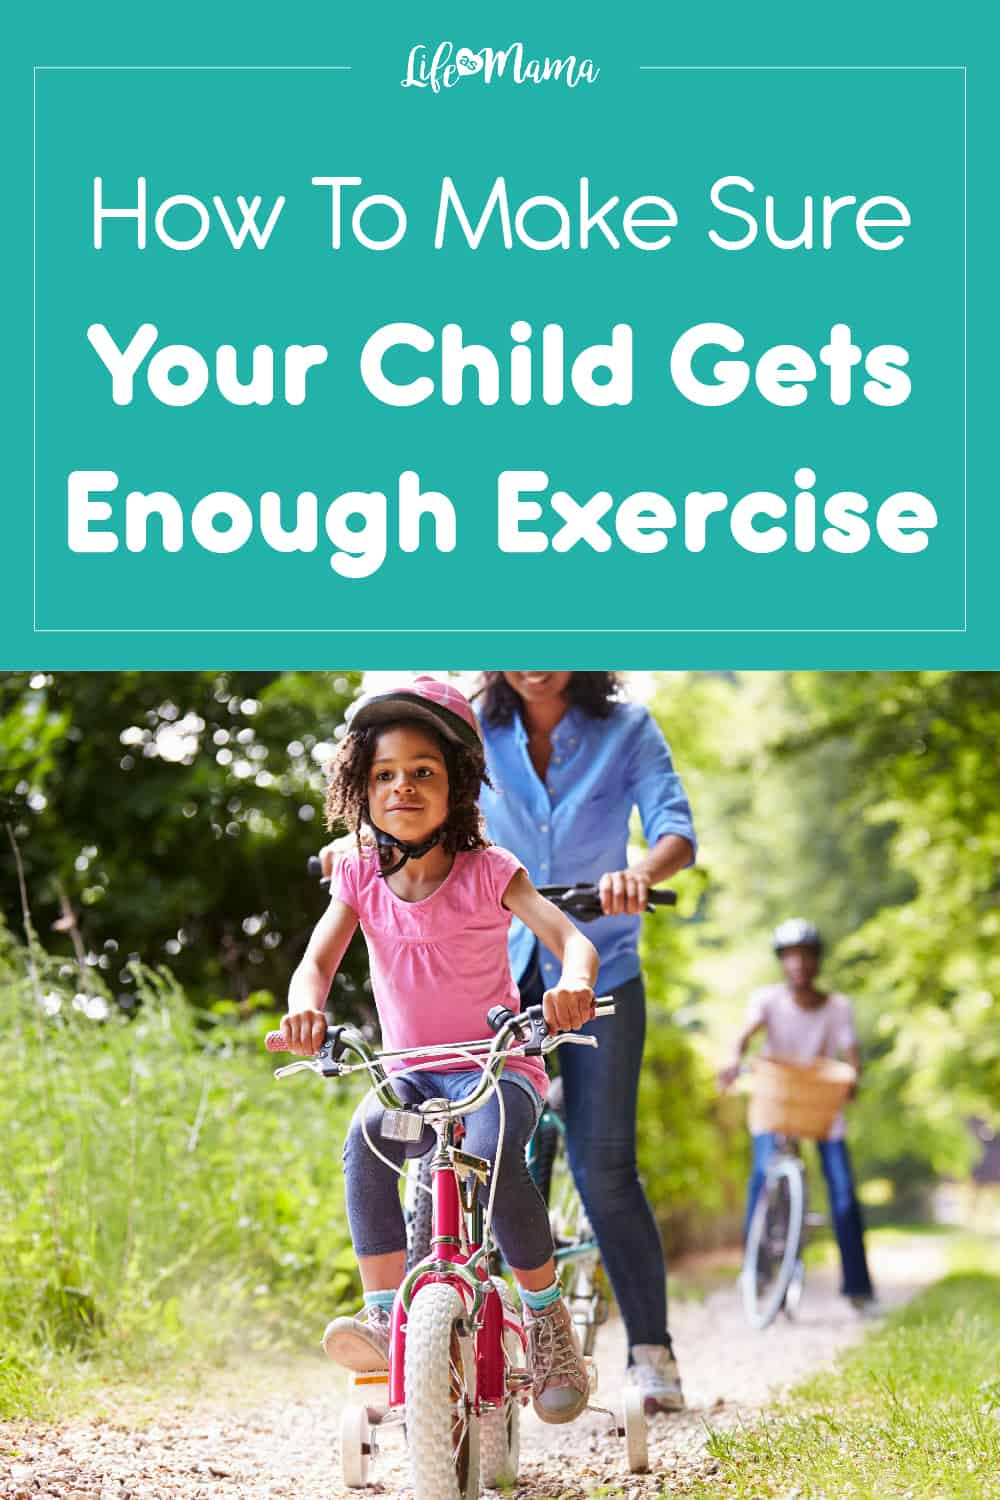 5 Ways To Ensure Your Child Gets Enough Physical Activity-03-01